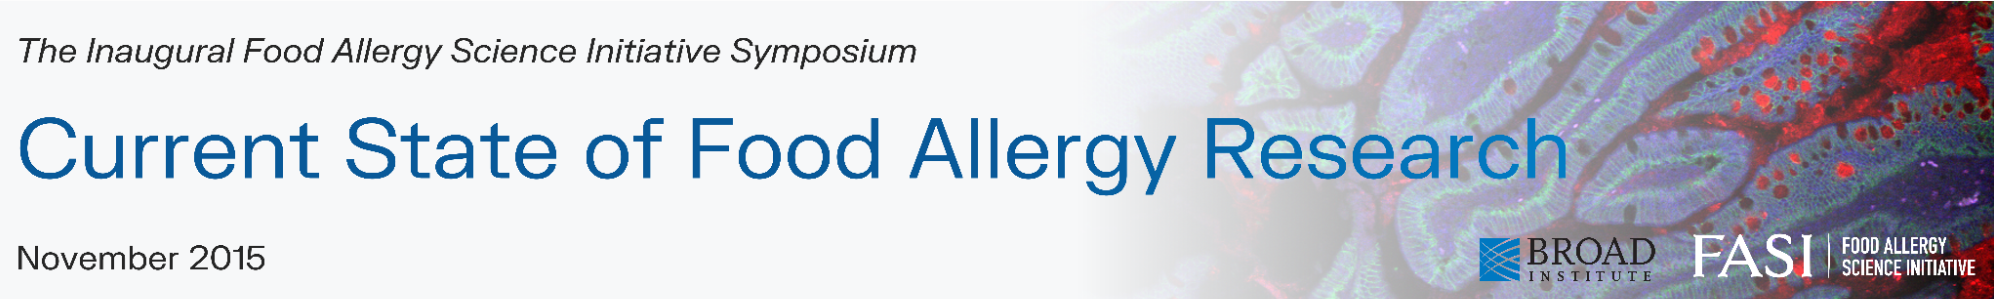 Symposium 2015: Current State of Food Allergy Research